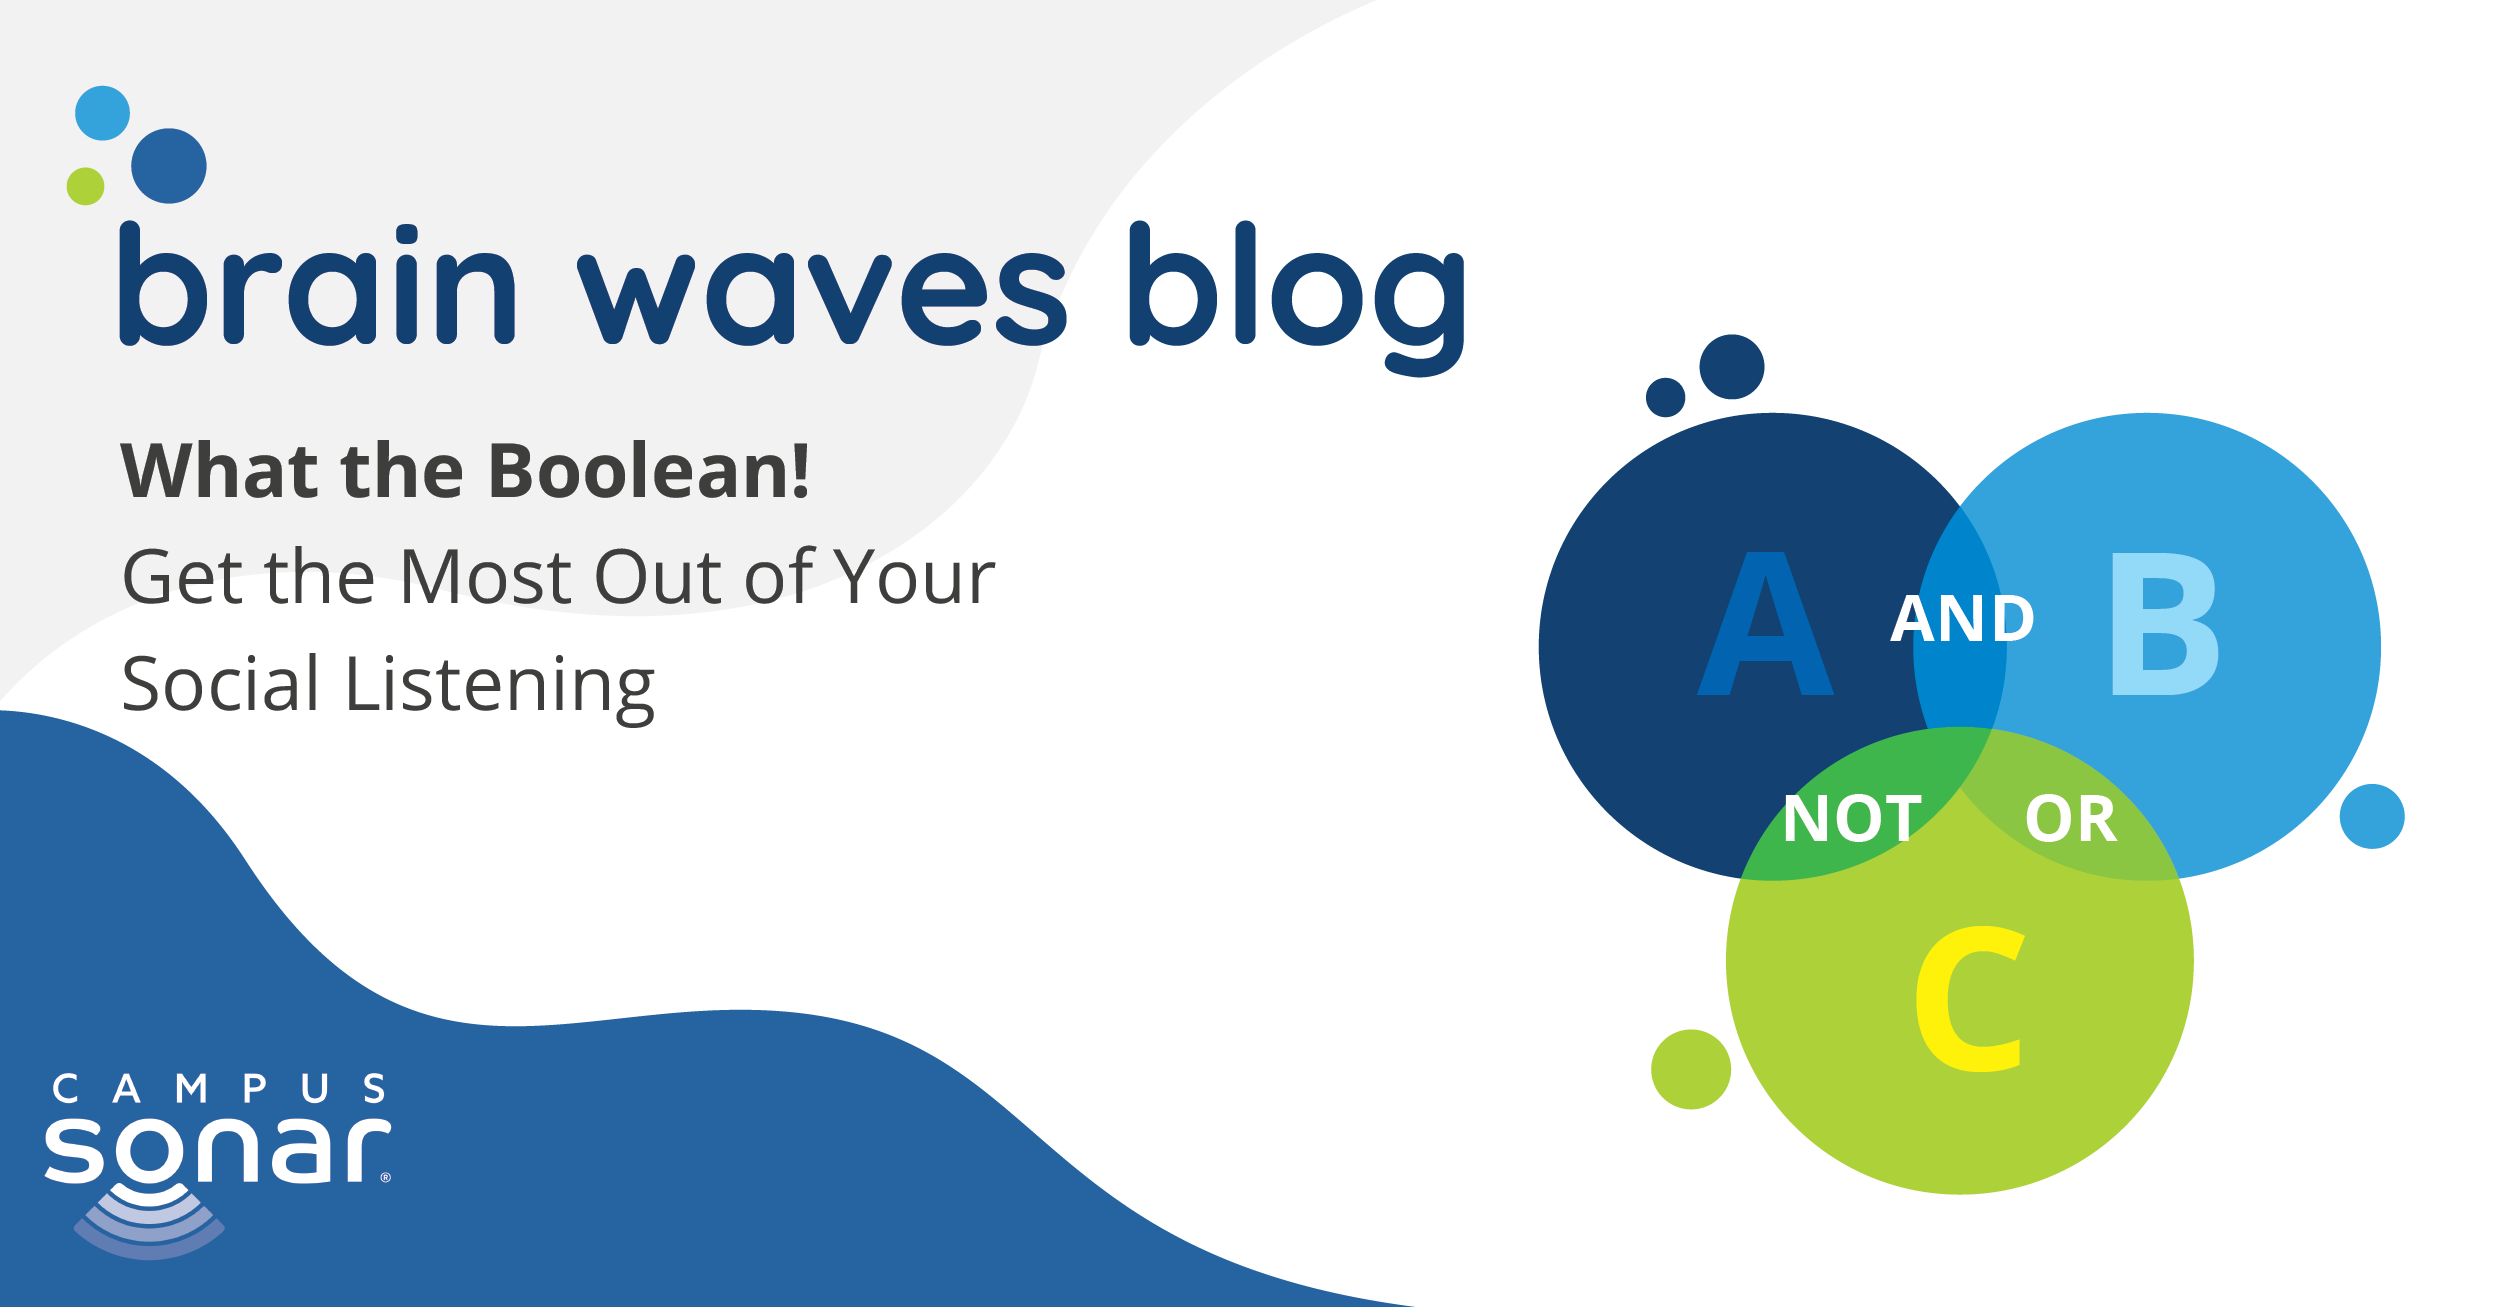 Brain Waves Blog: What the Boolean! Get the Most Out of Your Social Listening